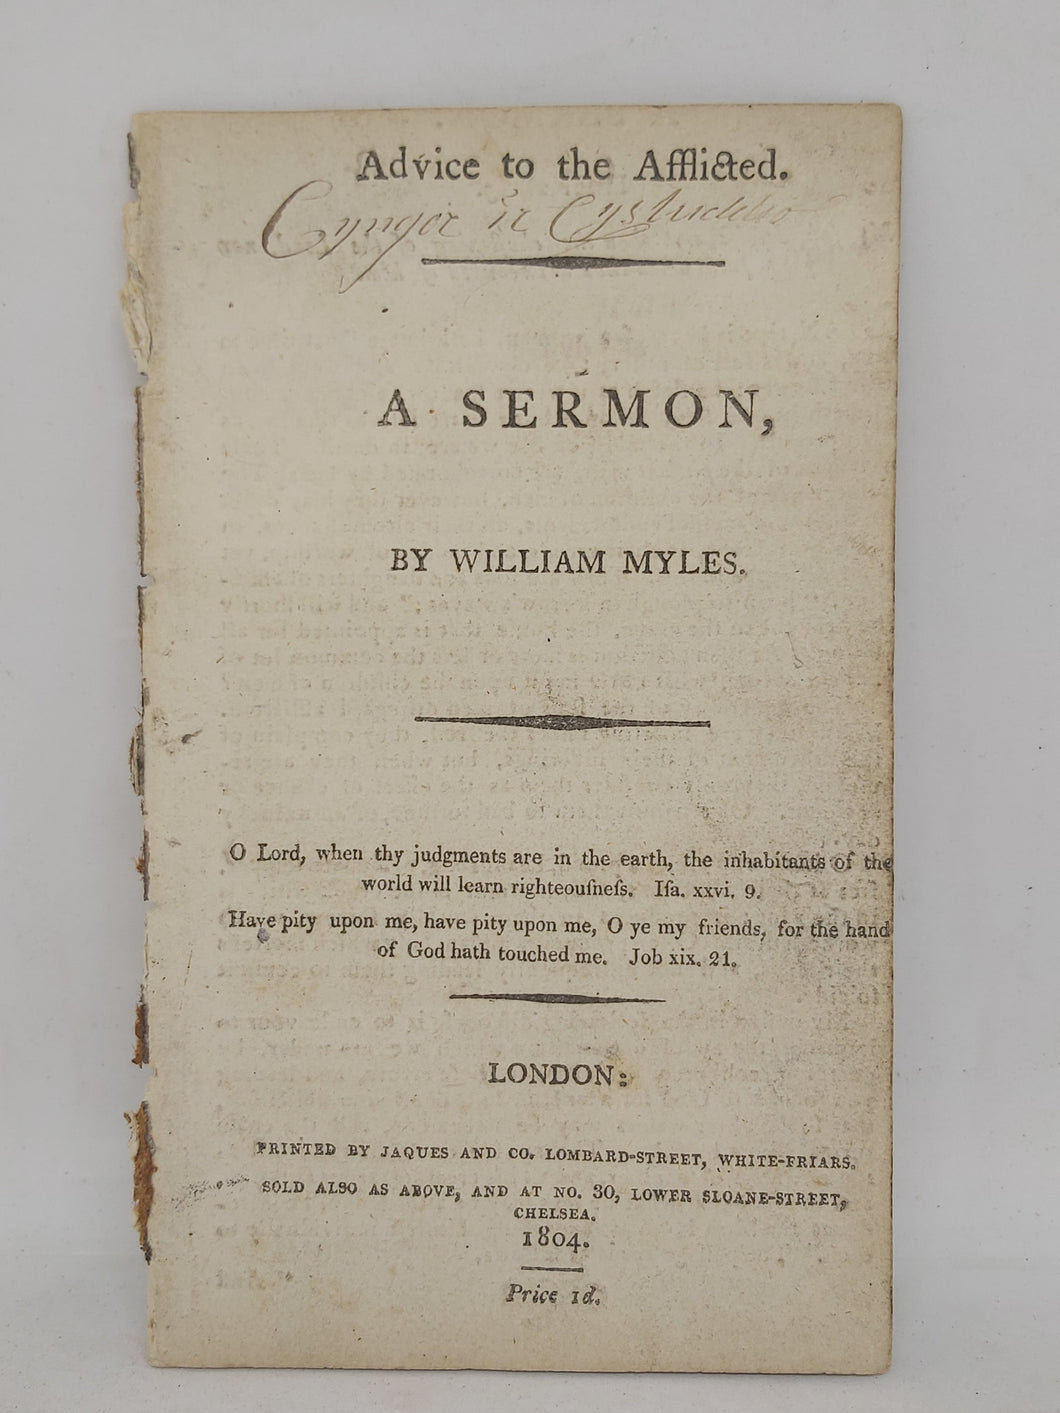 Advice to the afflicted: a sermon, 1804